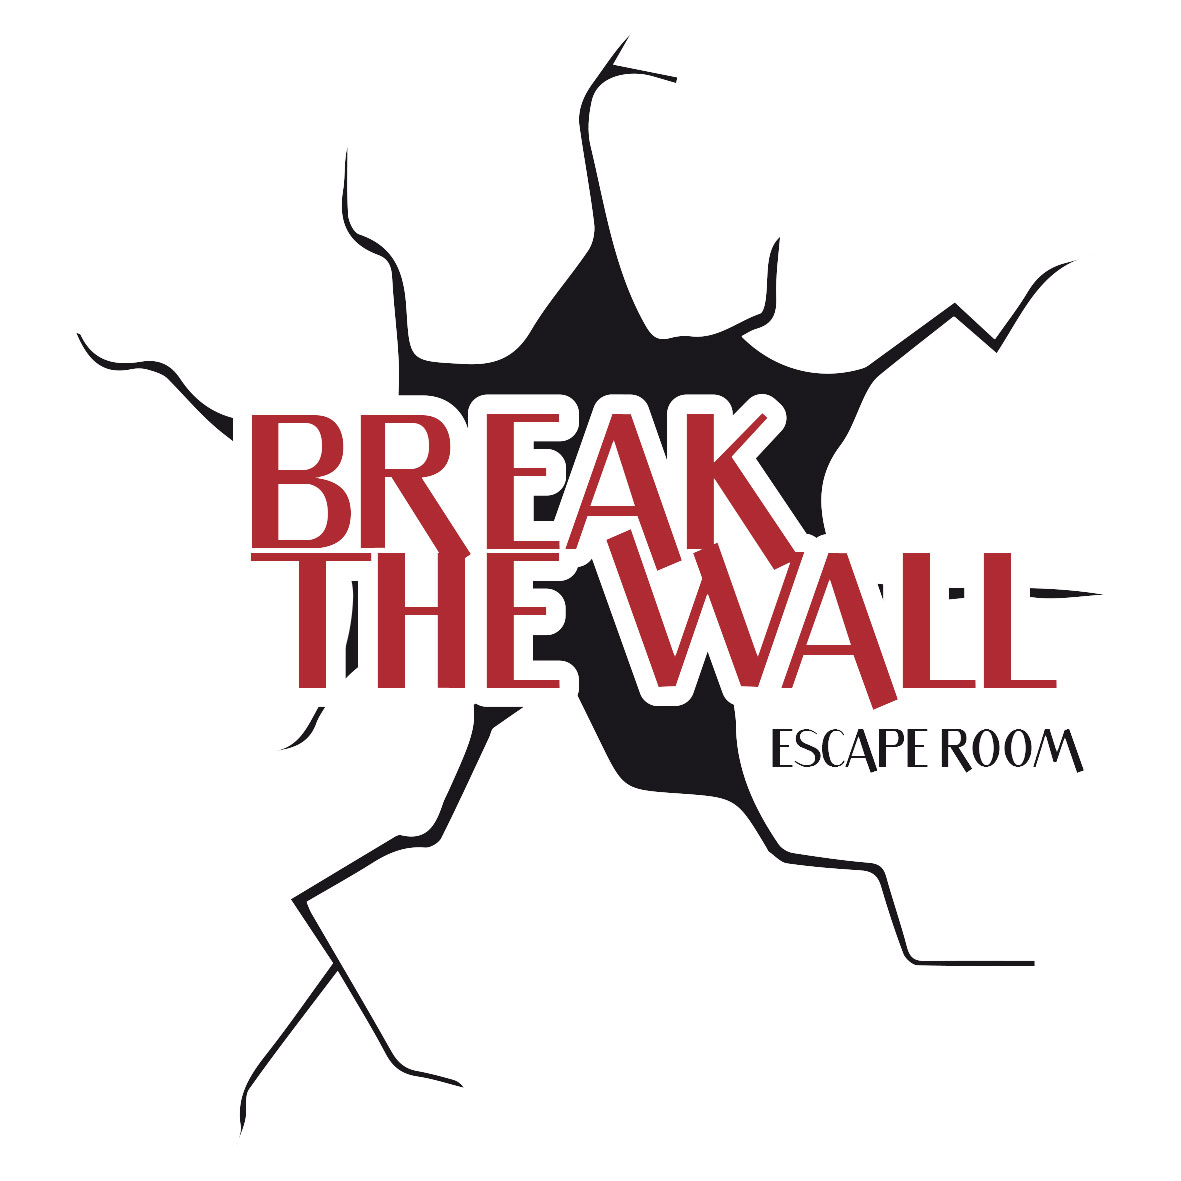 Break The Wall - Escape Room